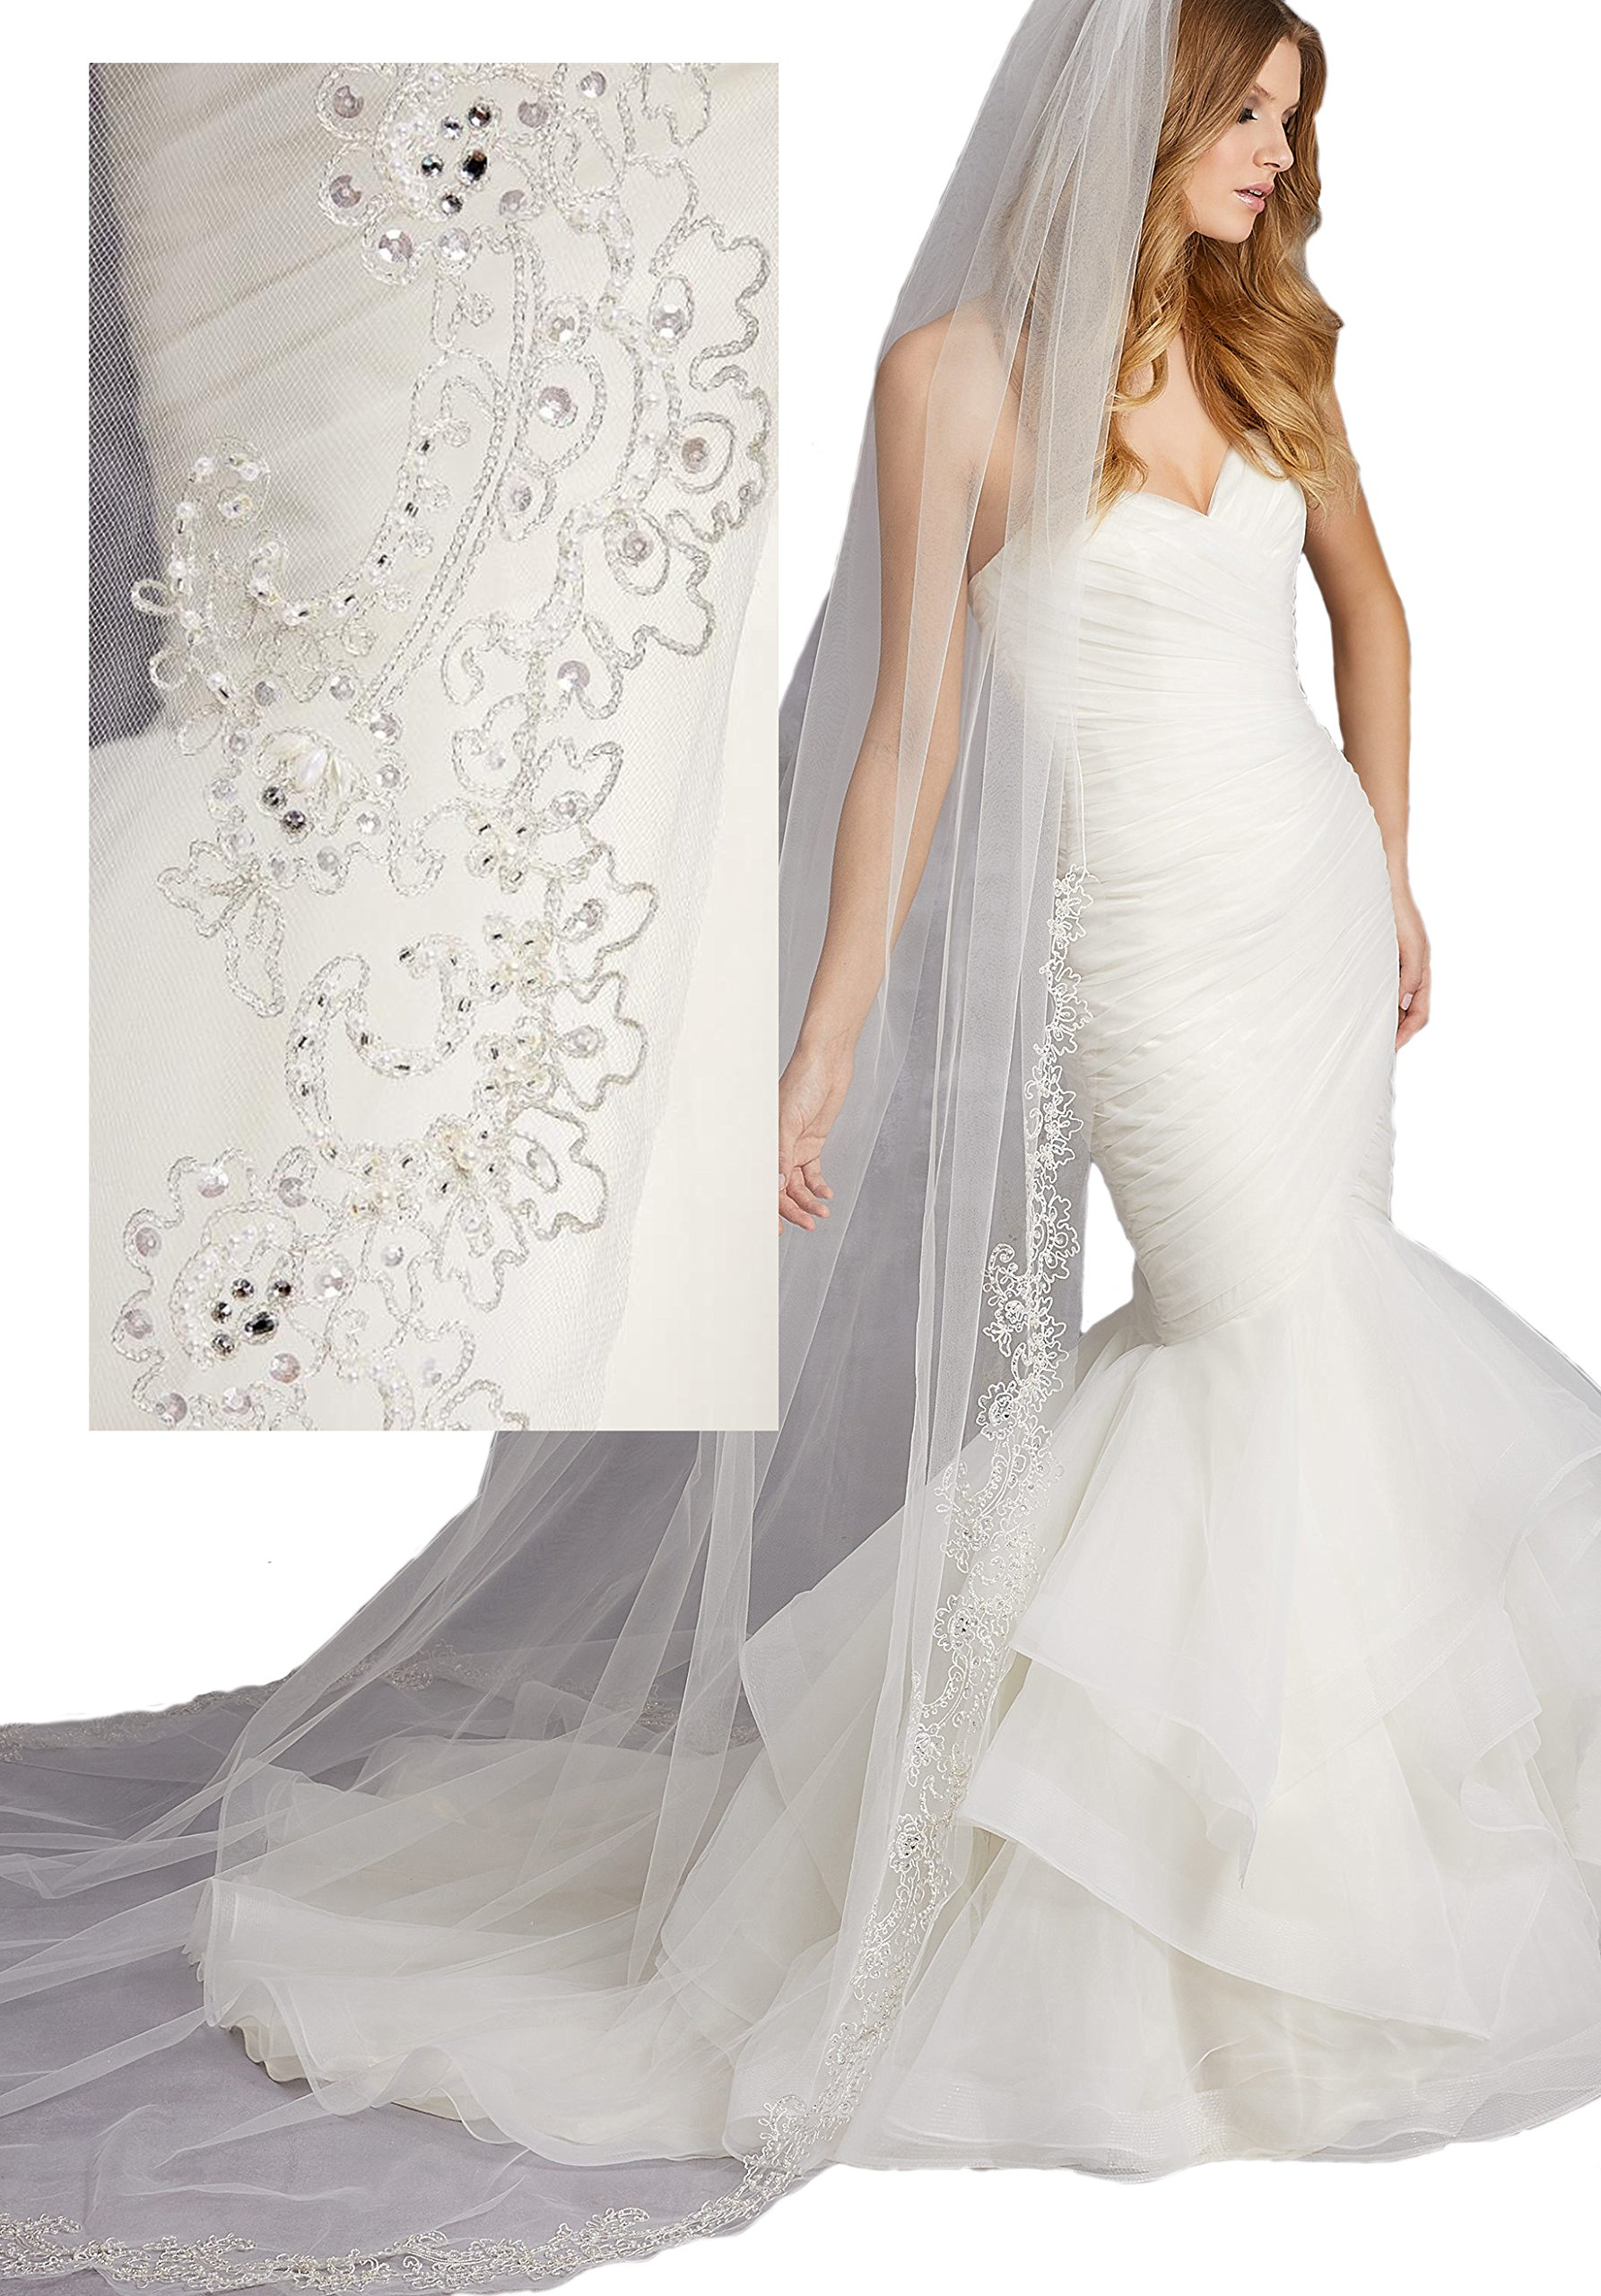 Passat Pale Ivory Single-Tier 3M Cathedral Veil with Embroidery of Pearls, Sequins, and Rhinestones VL-1016